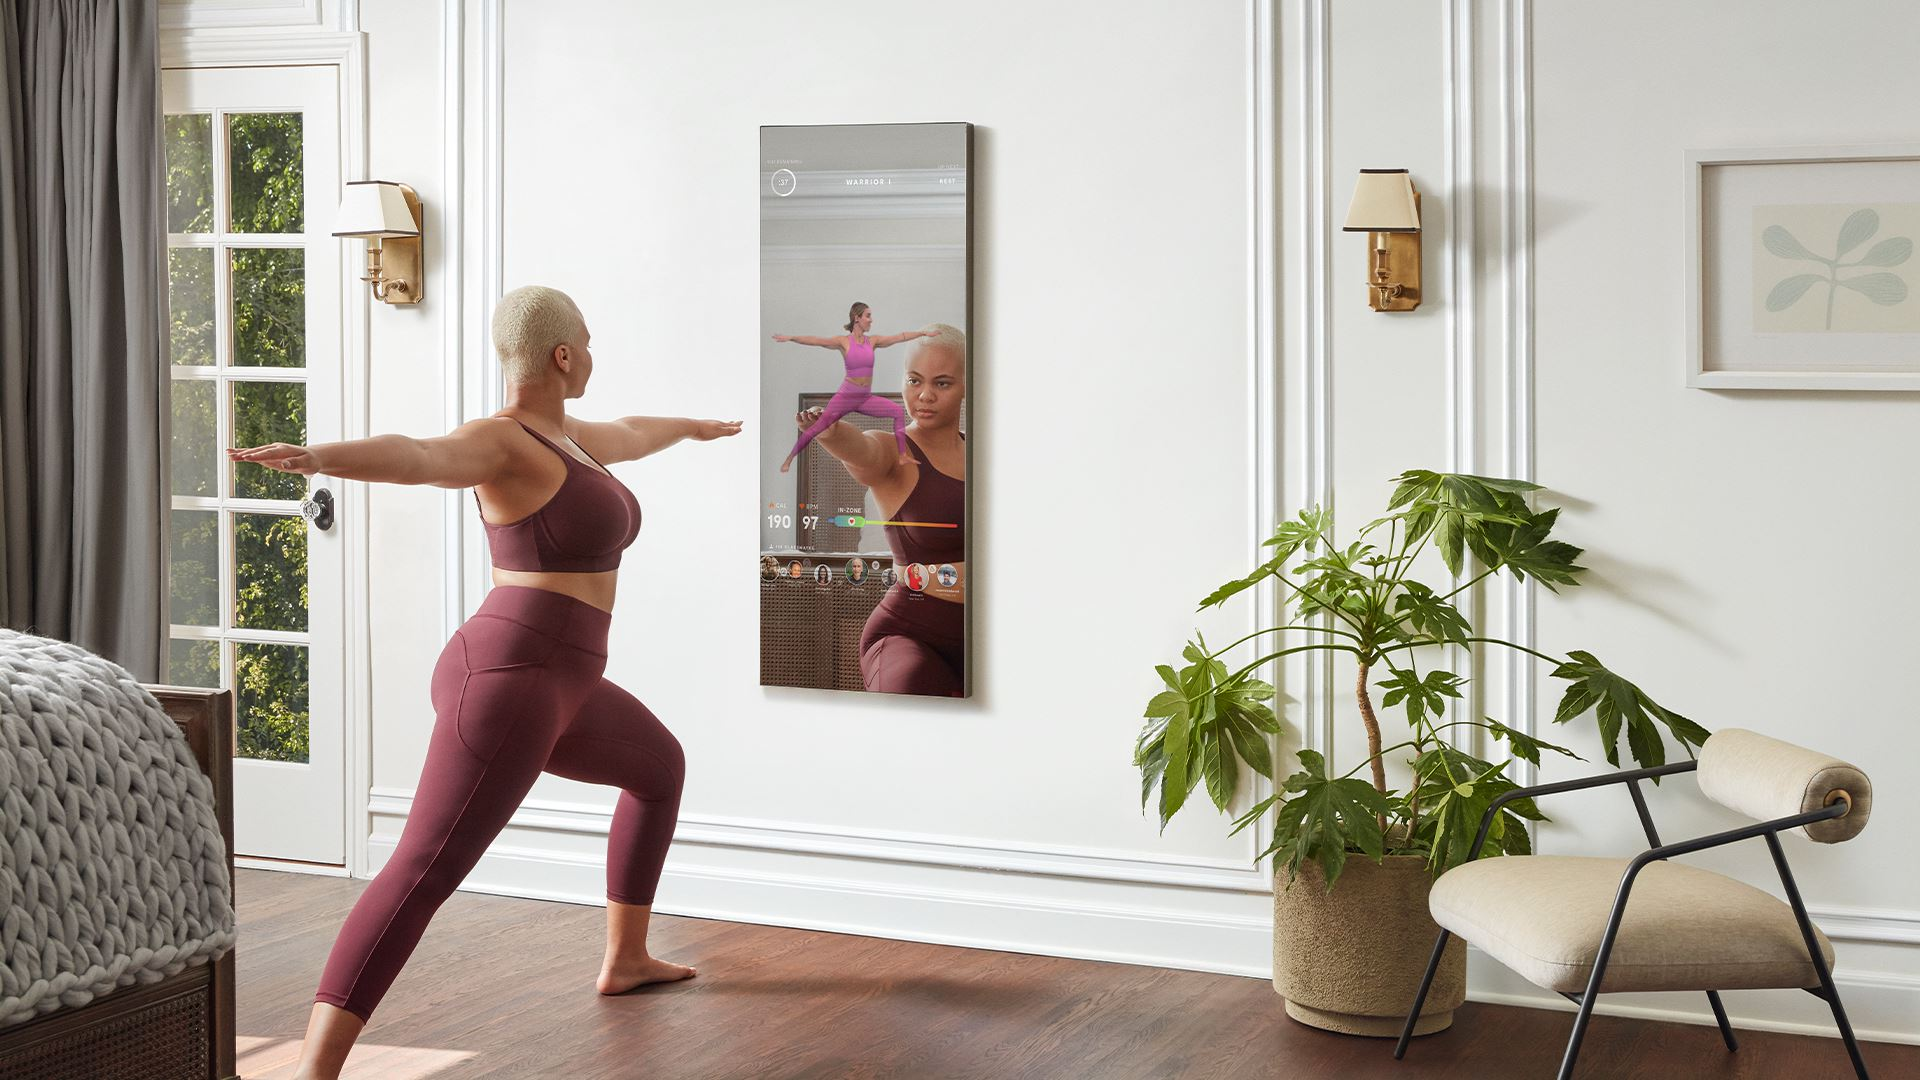 Lululemon Mirror Review 2021: Cost, Feature, and Is It Actually Worth It?